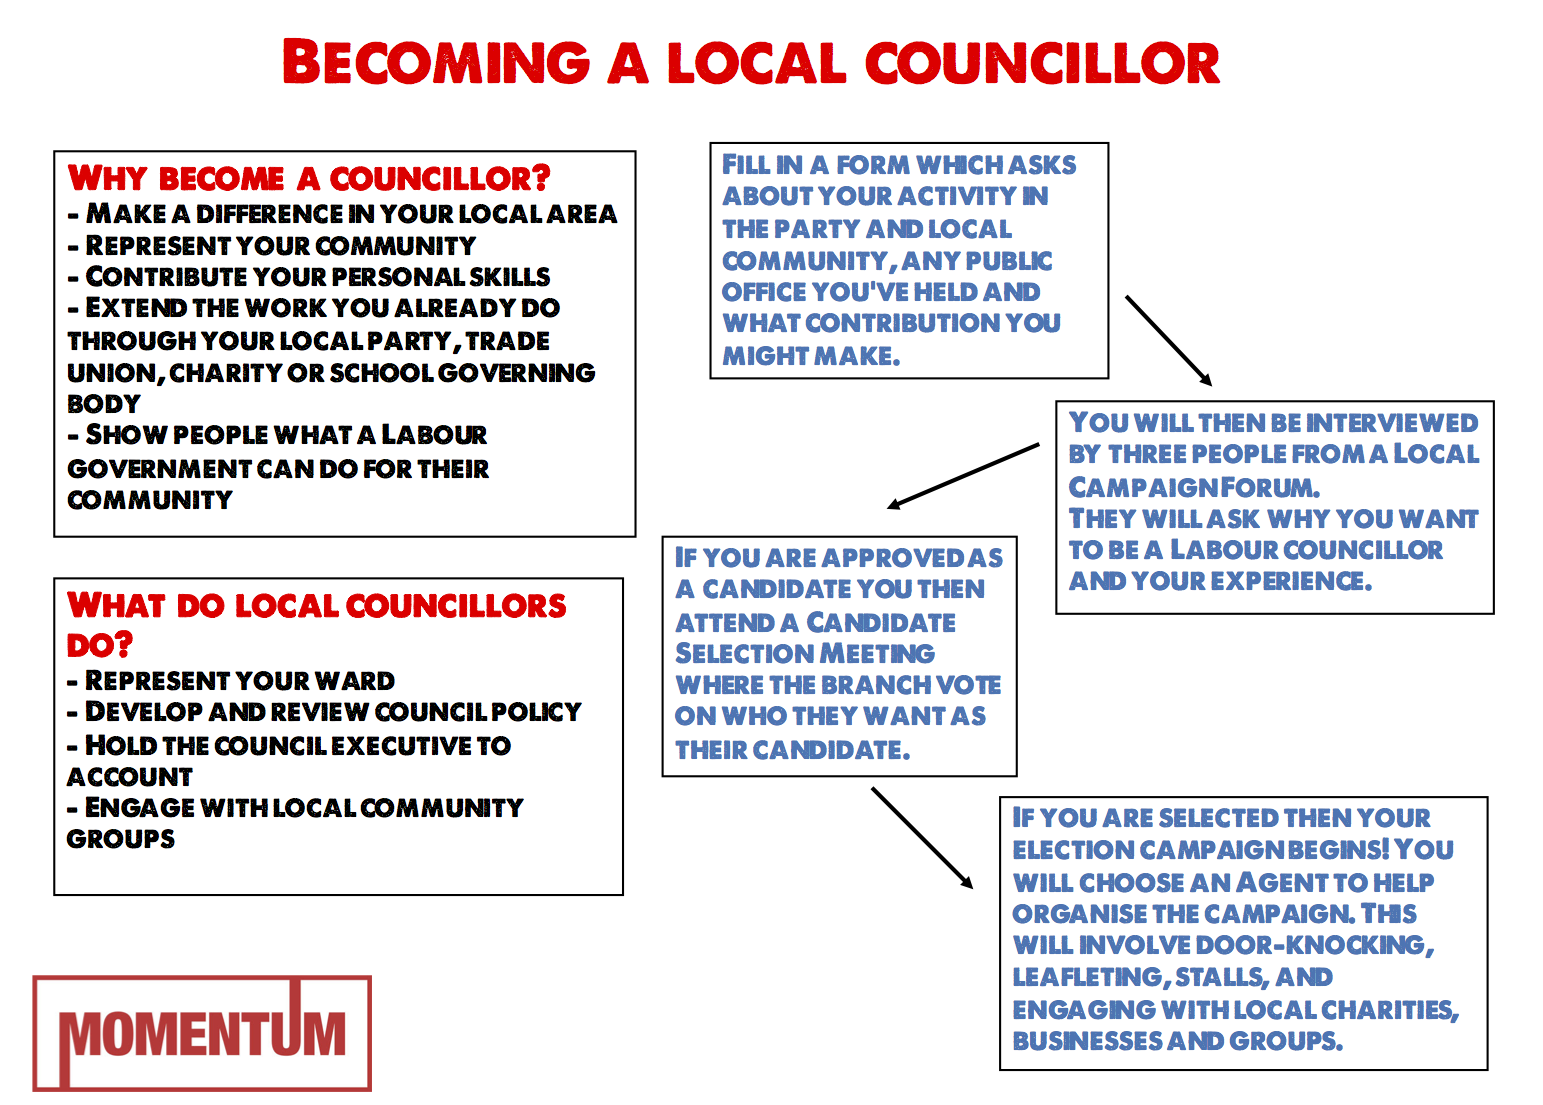 Becoming a Councillor Infographic